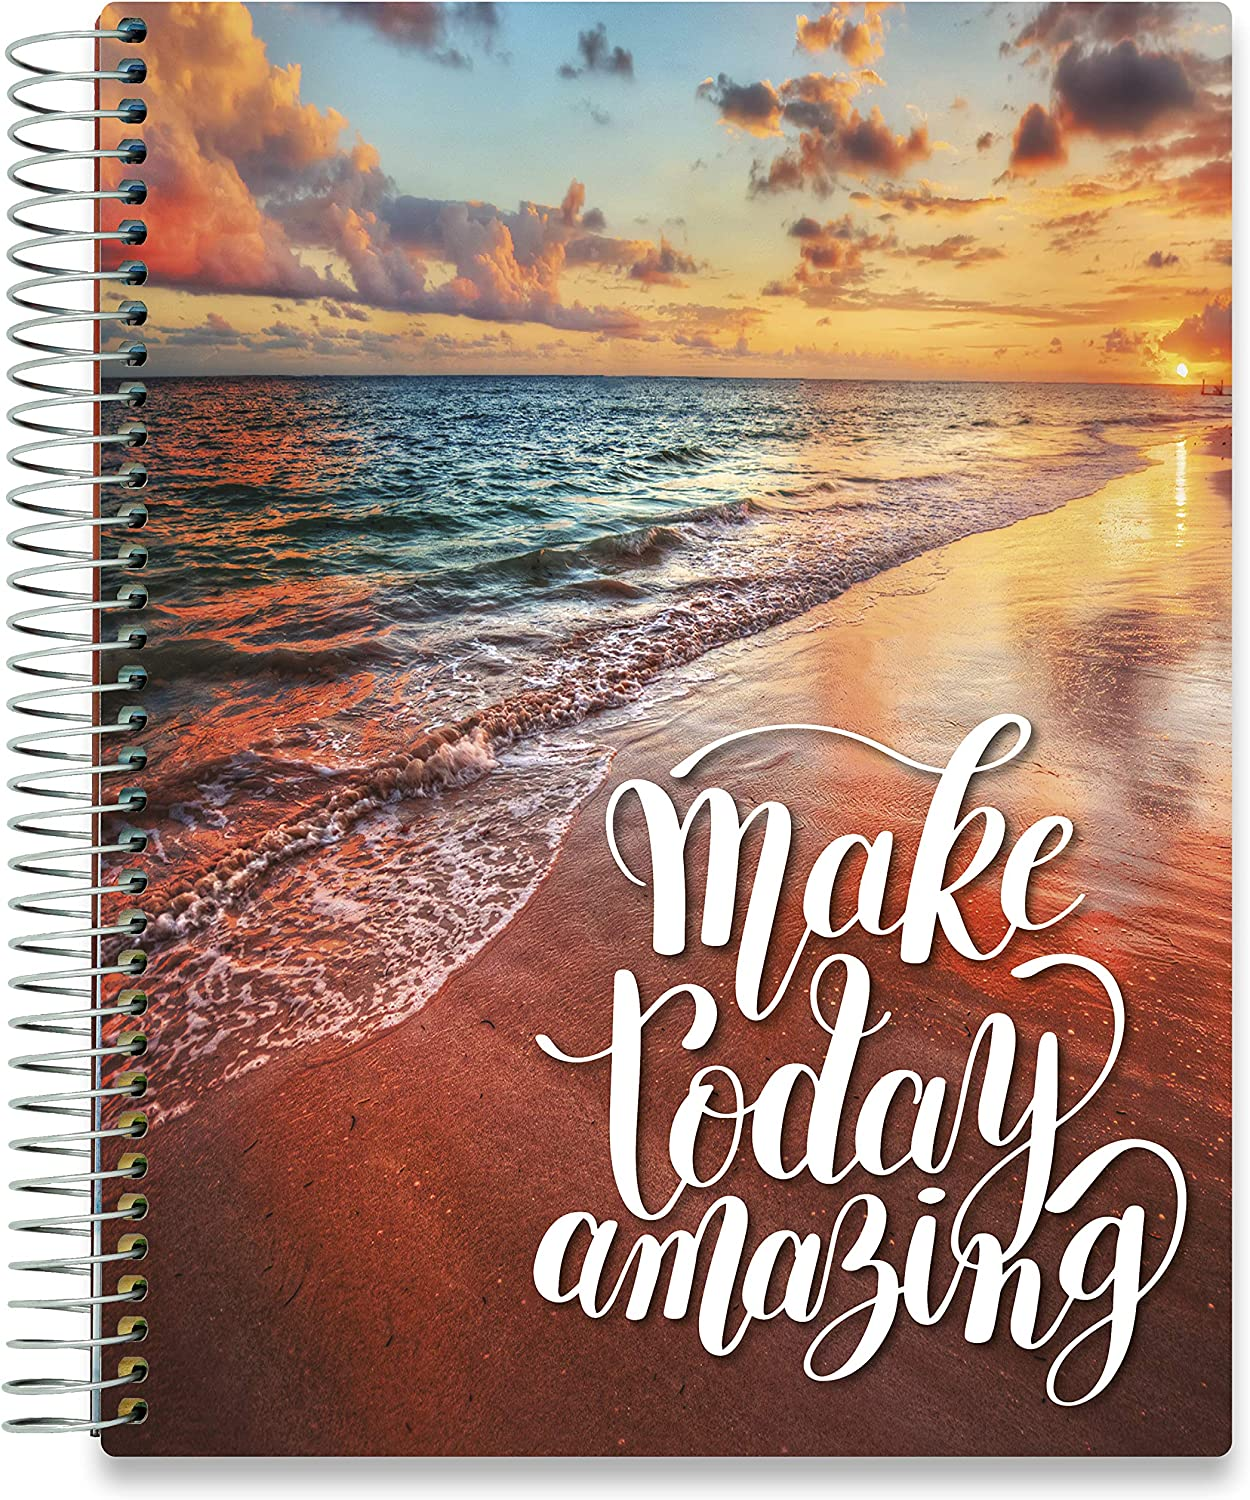 Tools4Wisdom 2021 Planner 2021 Calendar - Incl. December 2020 to Dec 2021 Daily Planner w/Full-Color Weekly and Monthly Planner Spreads, Tabs, Stickers - Tools for Wisdom Q4S - 8.5 x 11 Hardcover